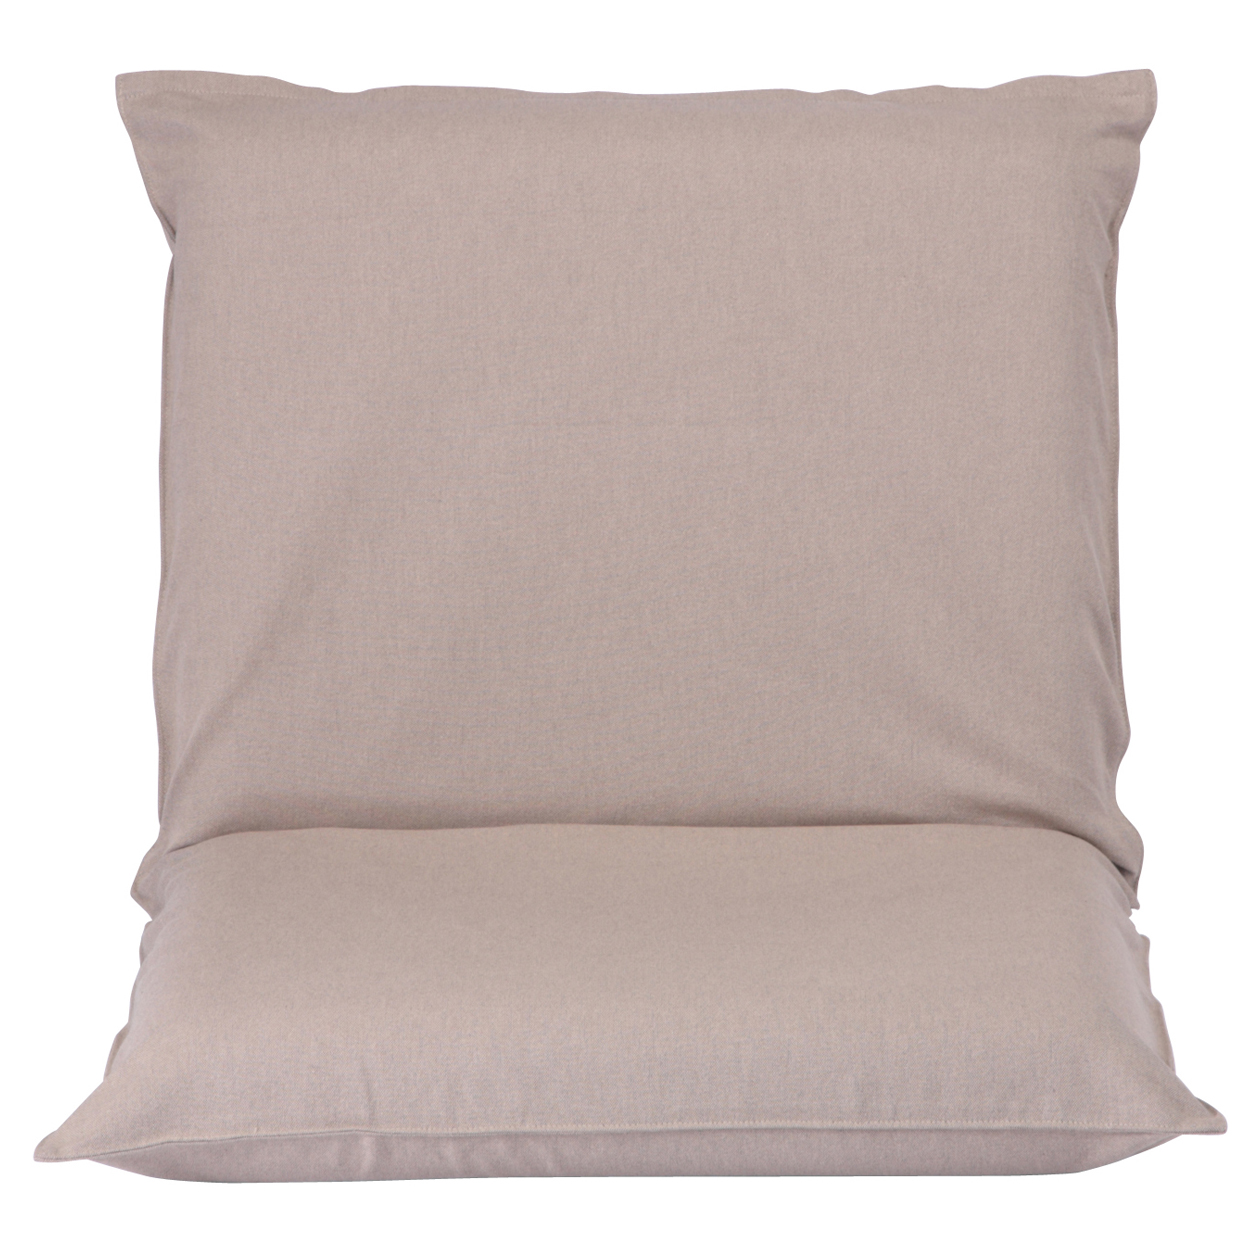 floor chair with back support philippines cream dining cotton cover for l be w57 d102 h10cm muji